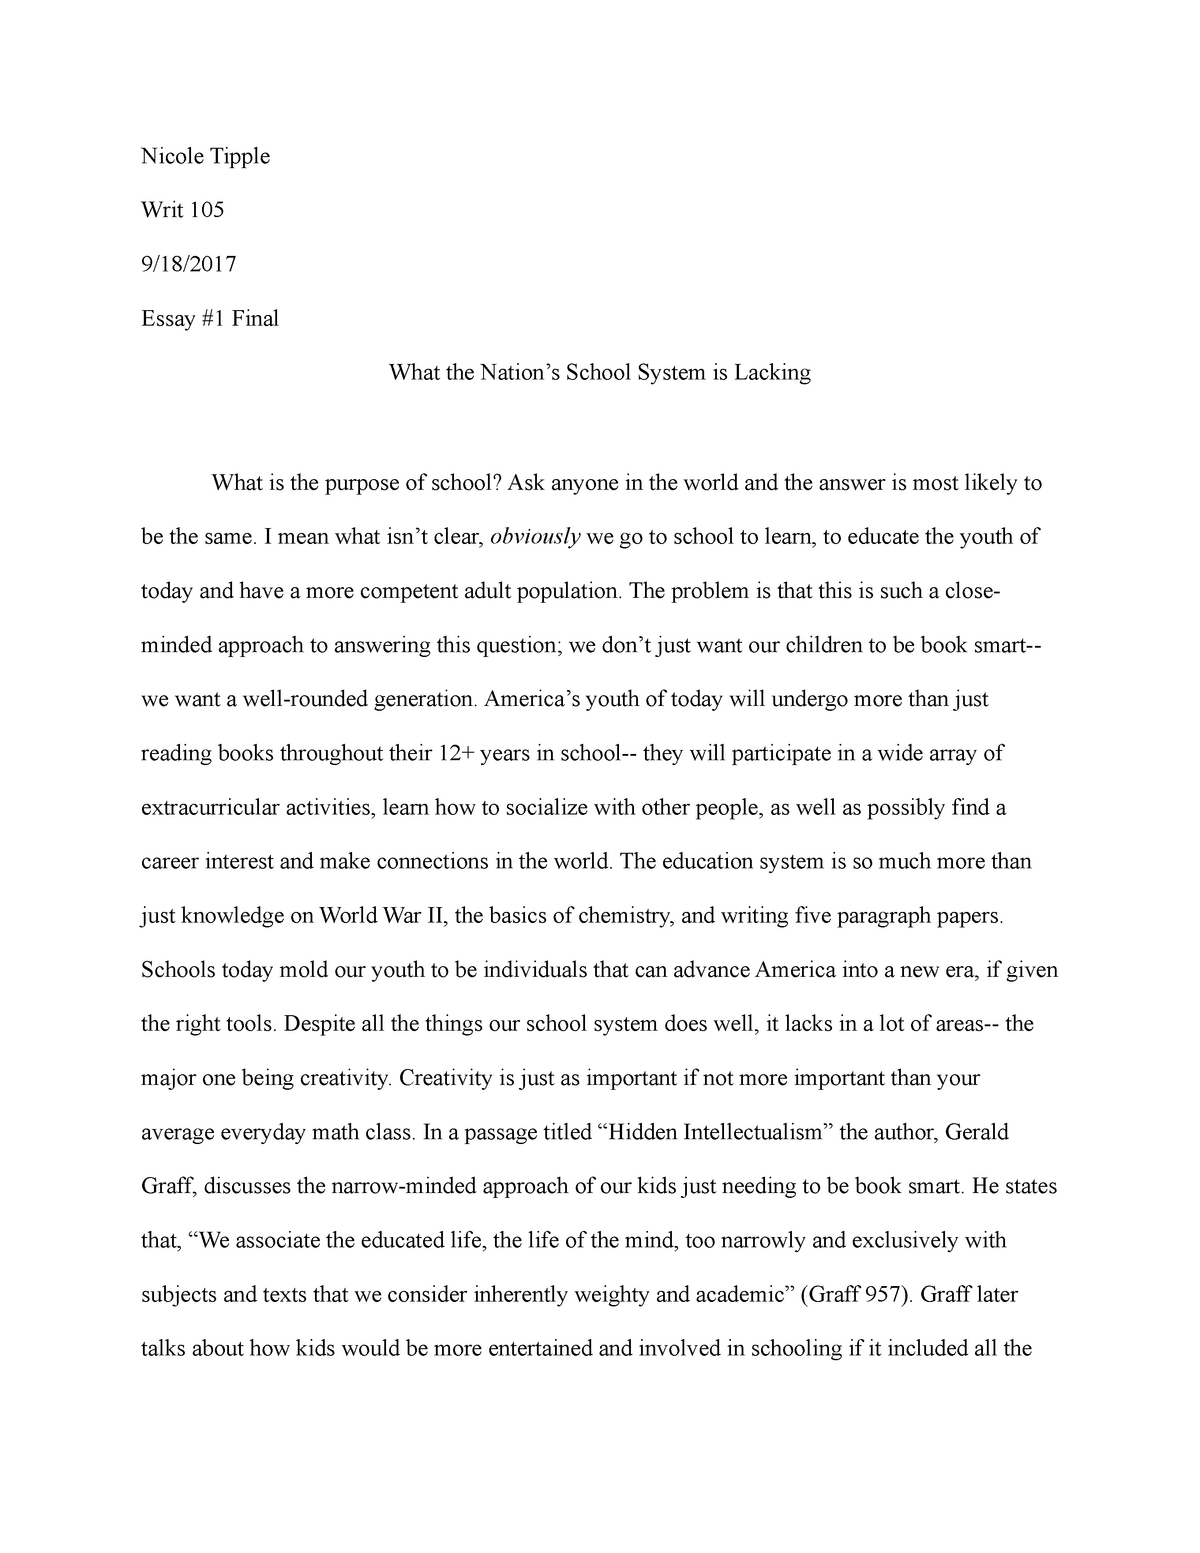 Antisocial personality disorder case study essay on a child